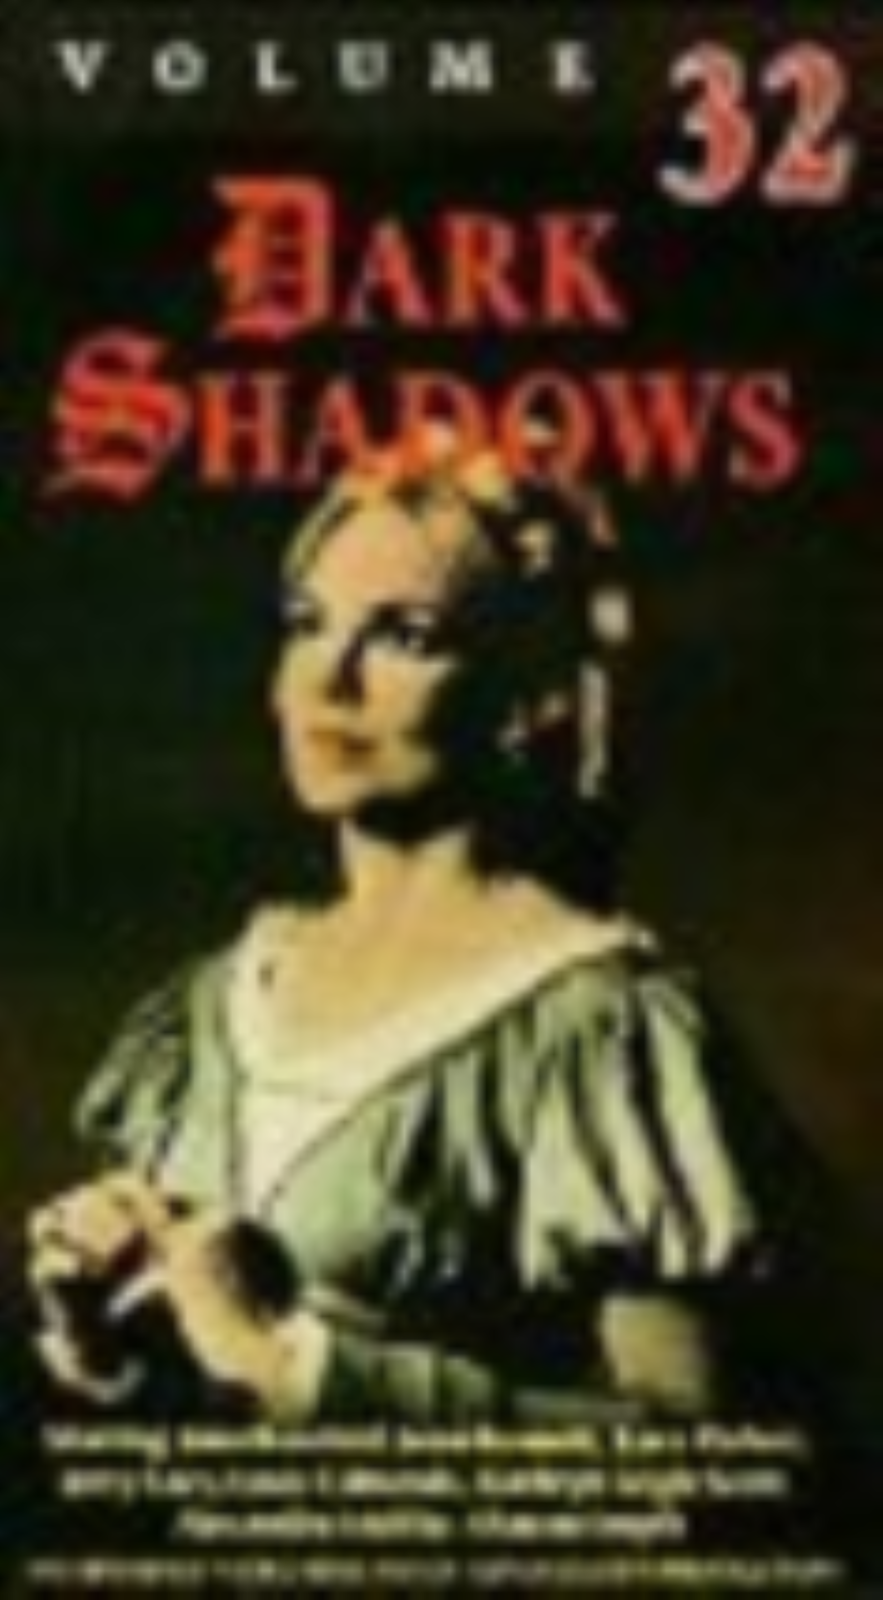 Dark Shadows Vol 32 Vhs